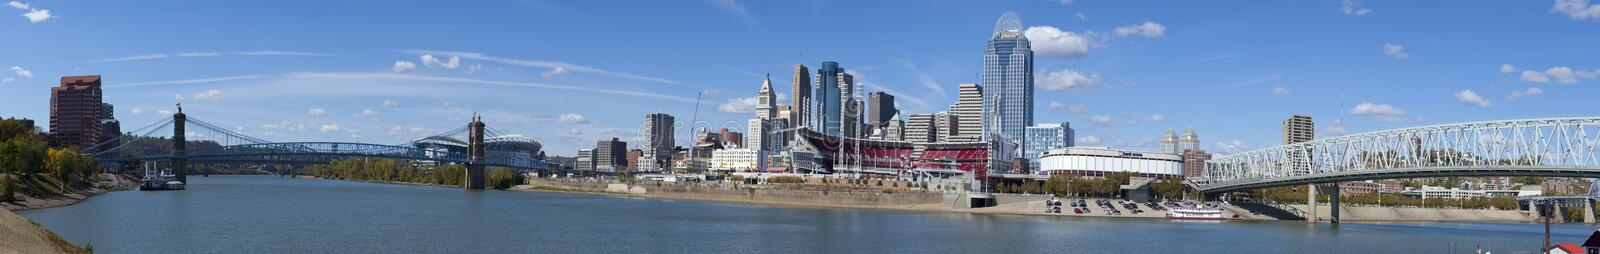 Cincinnati Ohio (panoramic) stock photo